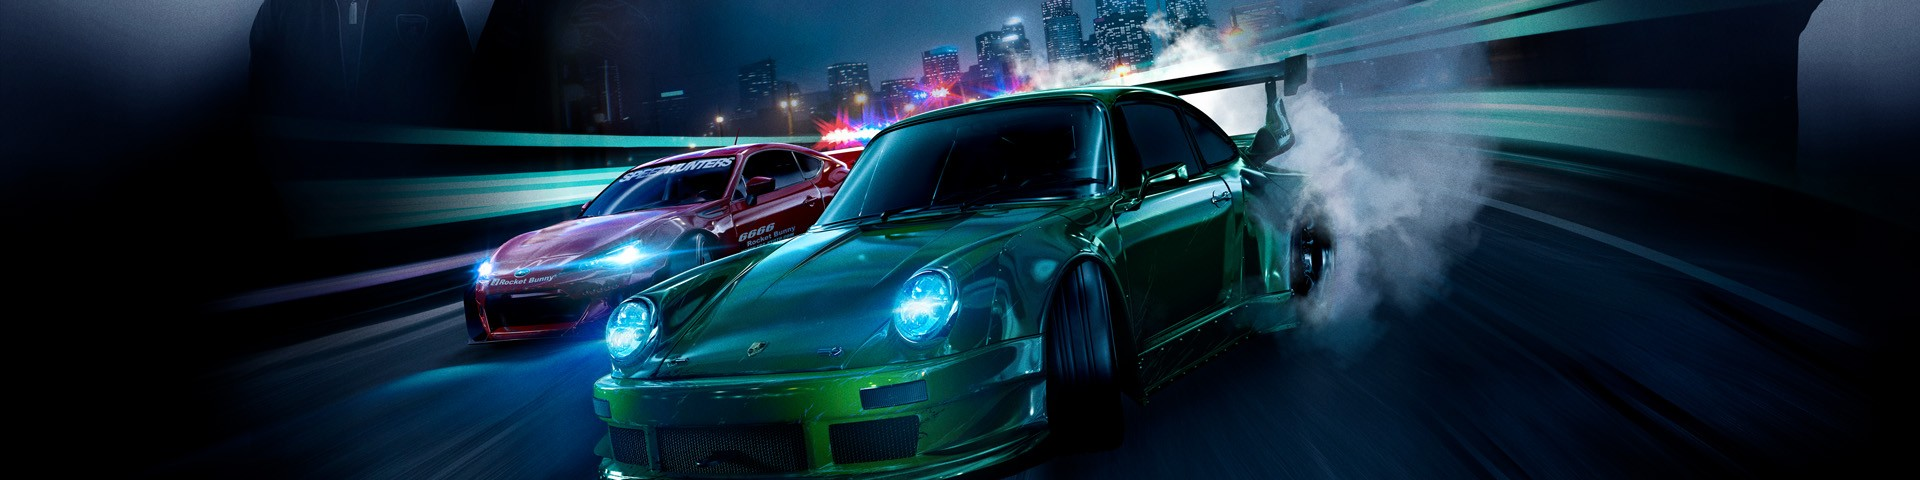 need for speed full movie in english watch online